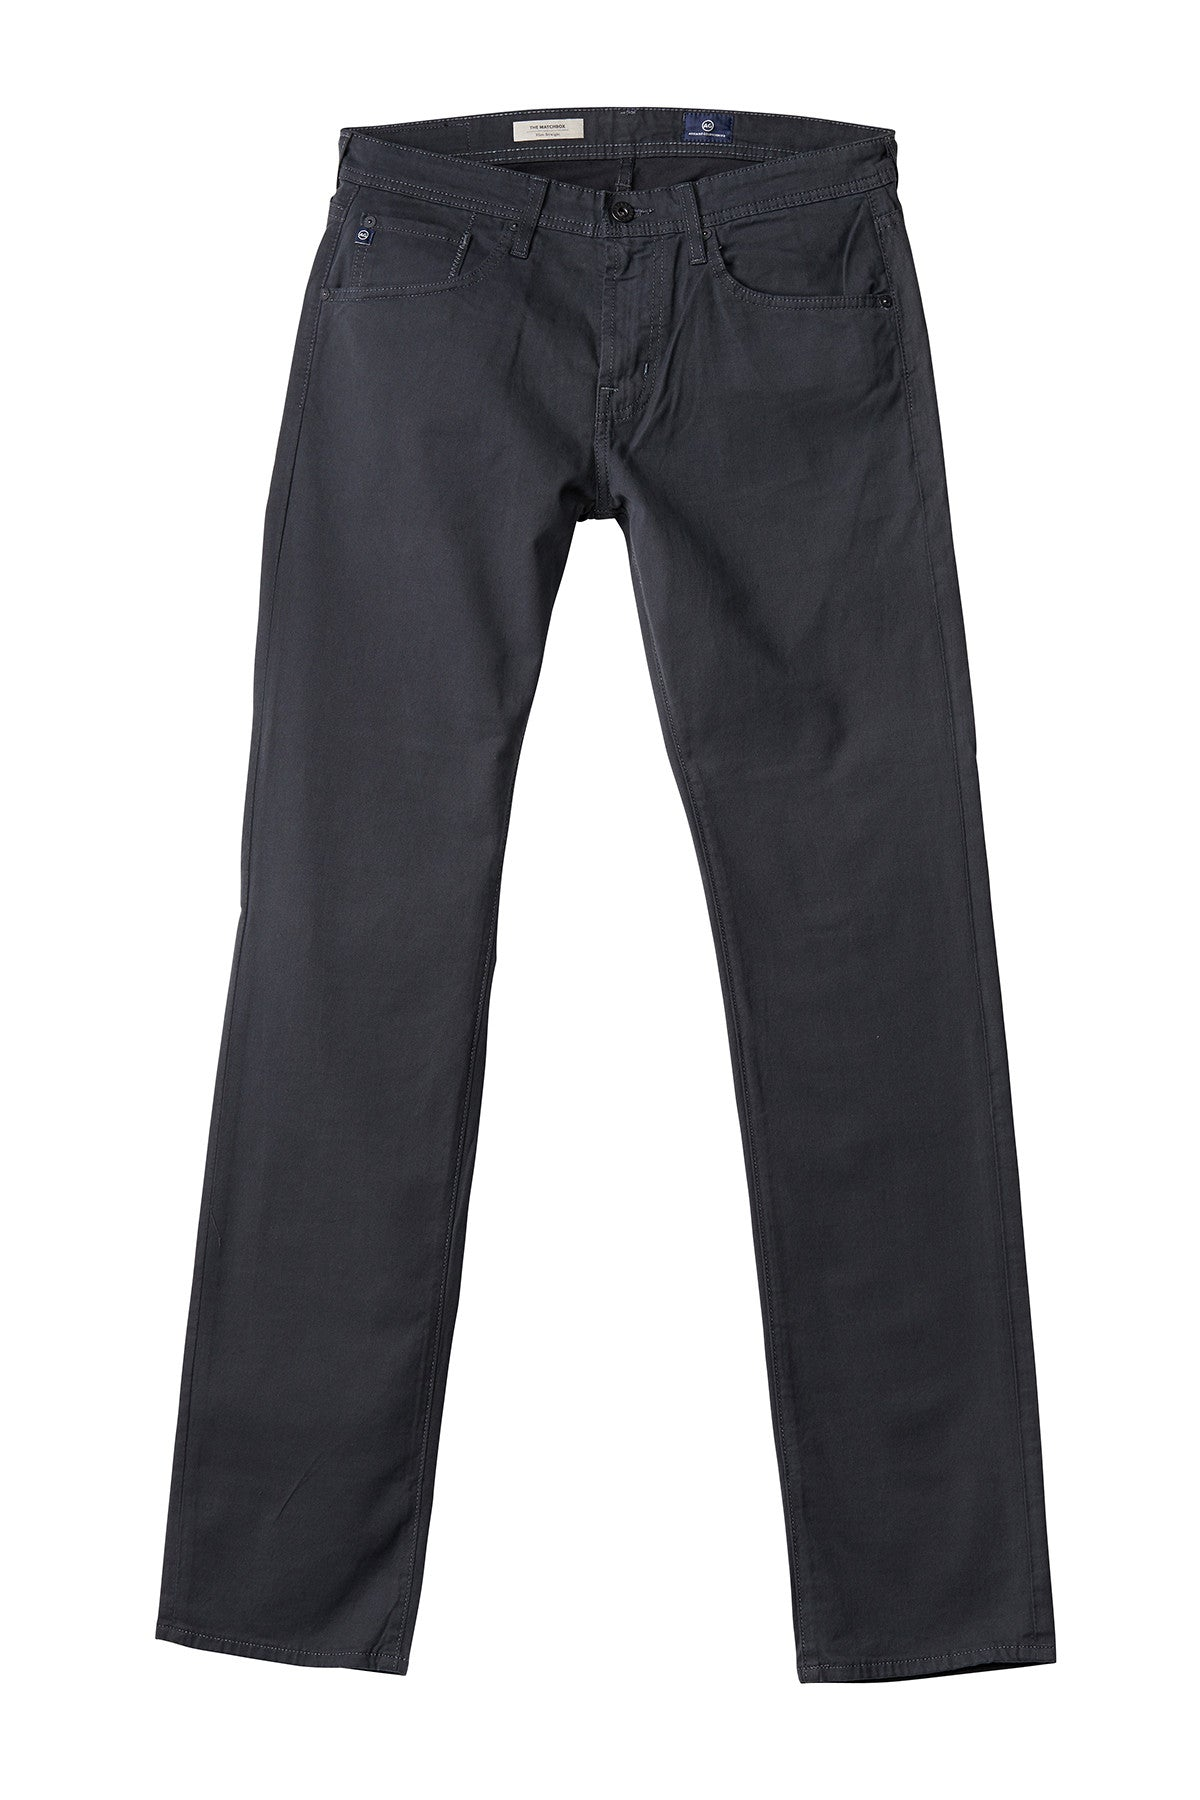 AG 'Matchbox' Slim Fit Twill Pants in Brushed Grey